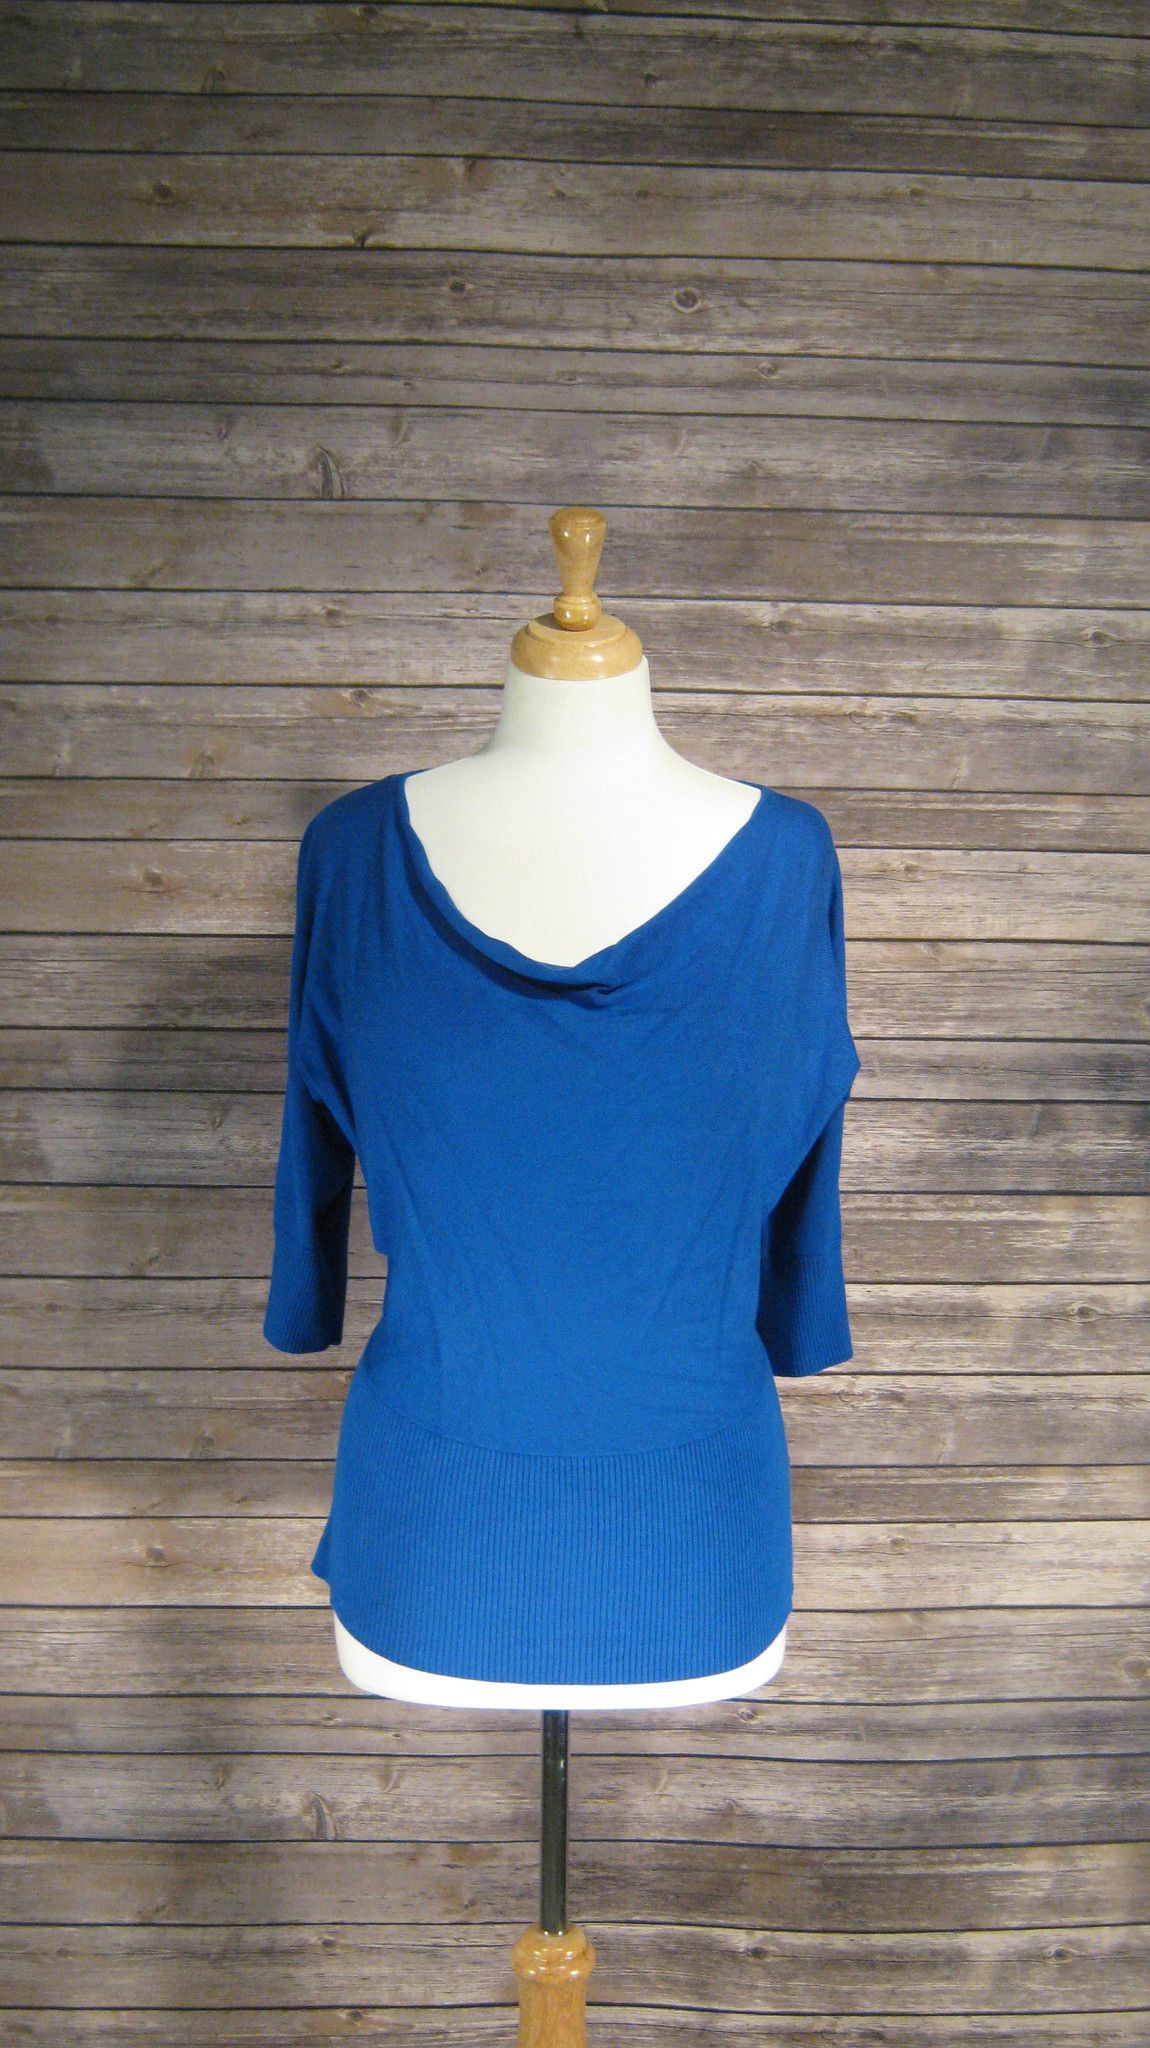 AB Studio Small royal blue cowl neck sweater | Products